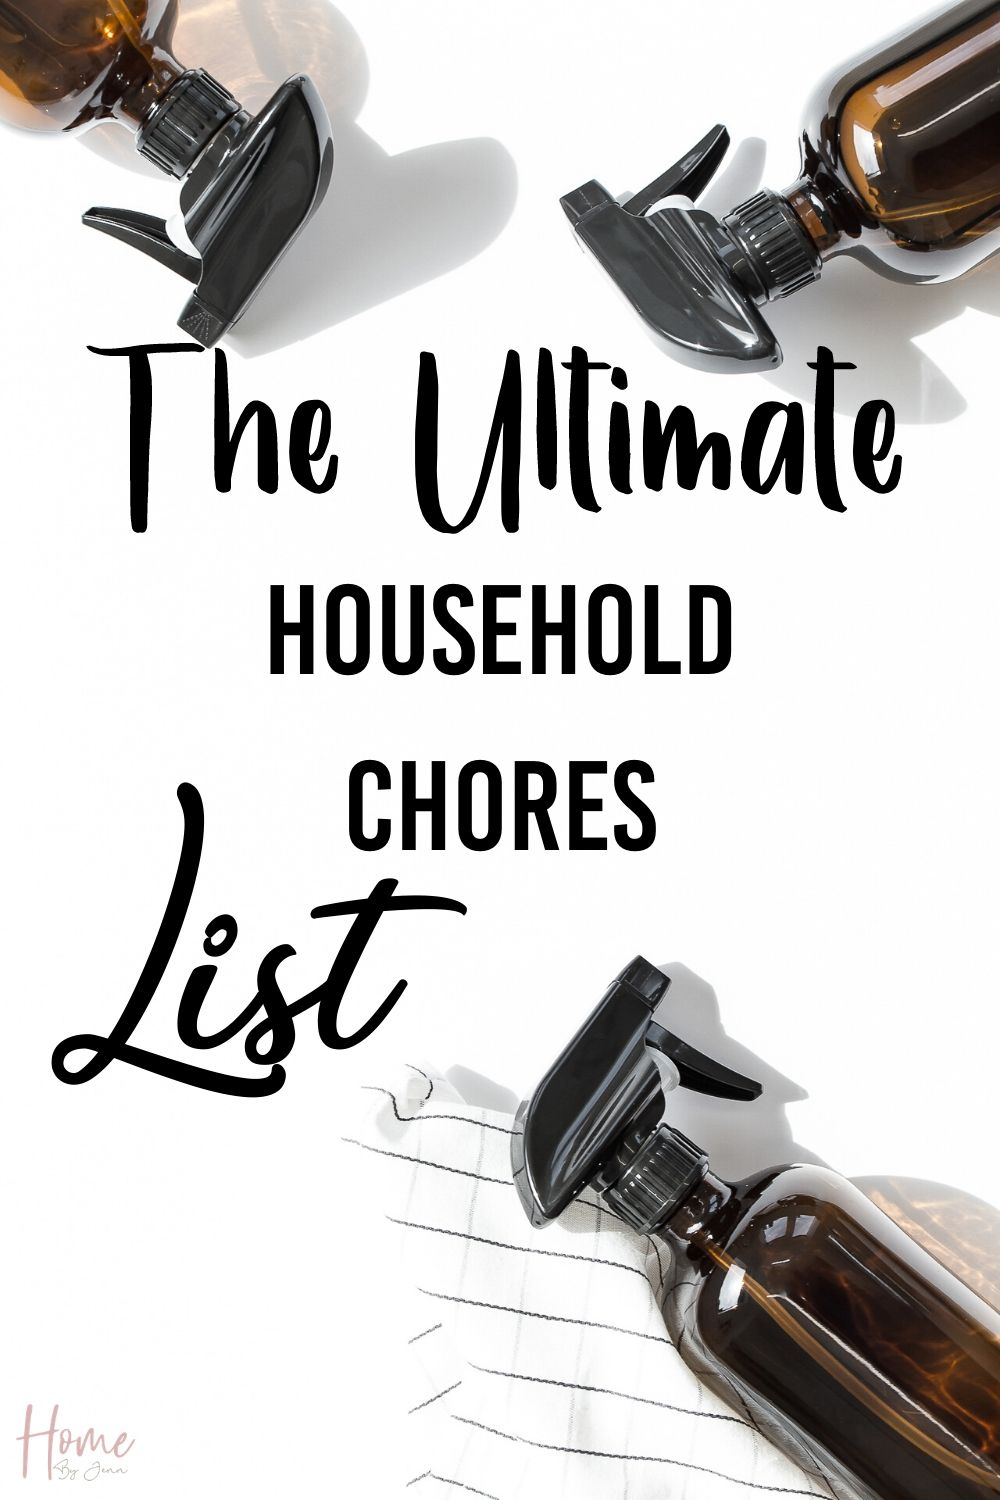 Check out the ultimate household chores list. Know what needs to be done daily, weekly, monthly, and seasonally to keep up on the household chores. #cleaning #cleaningtips #cleaningroutine #householdchores #chores via @homebyjenn